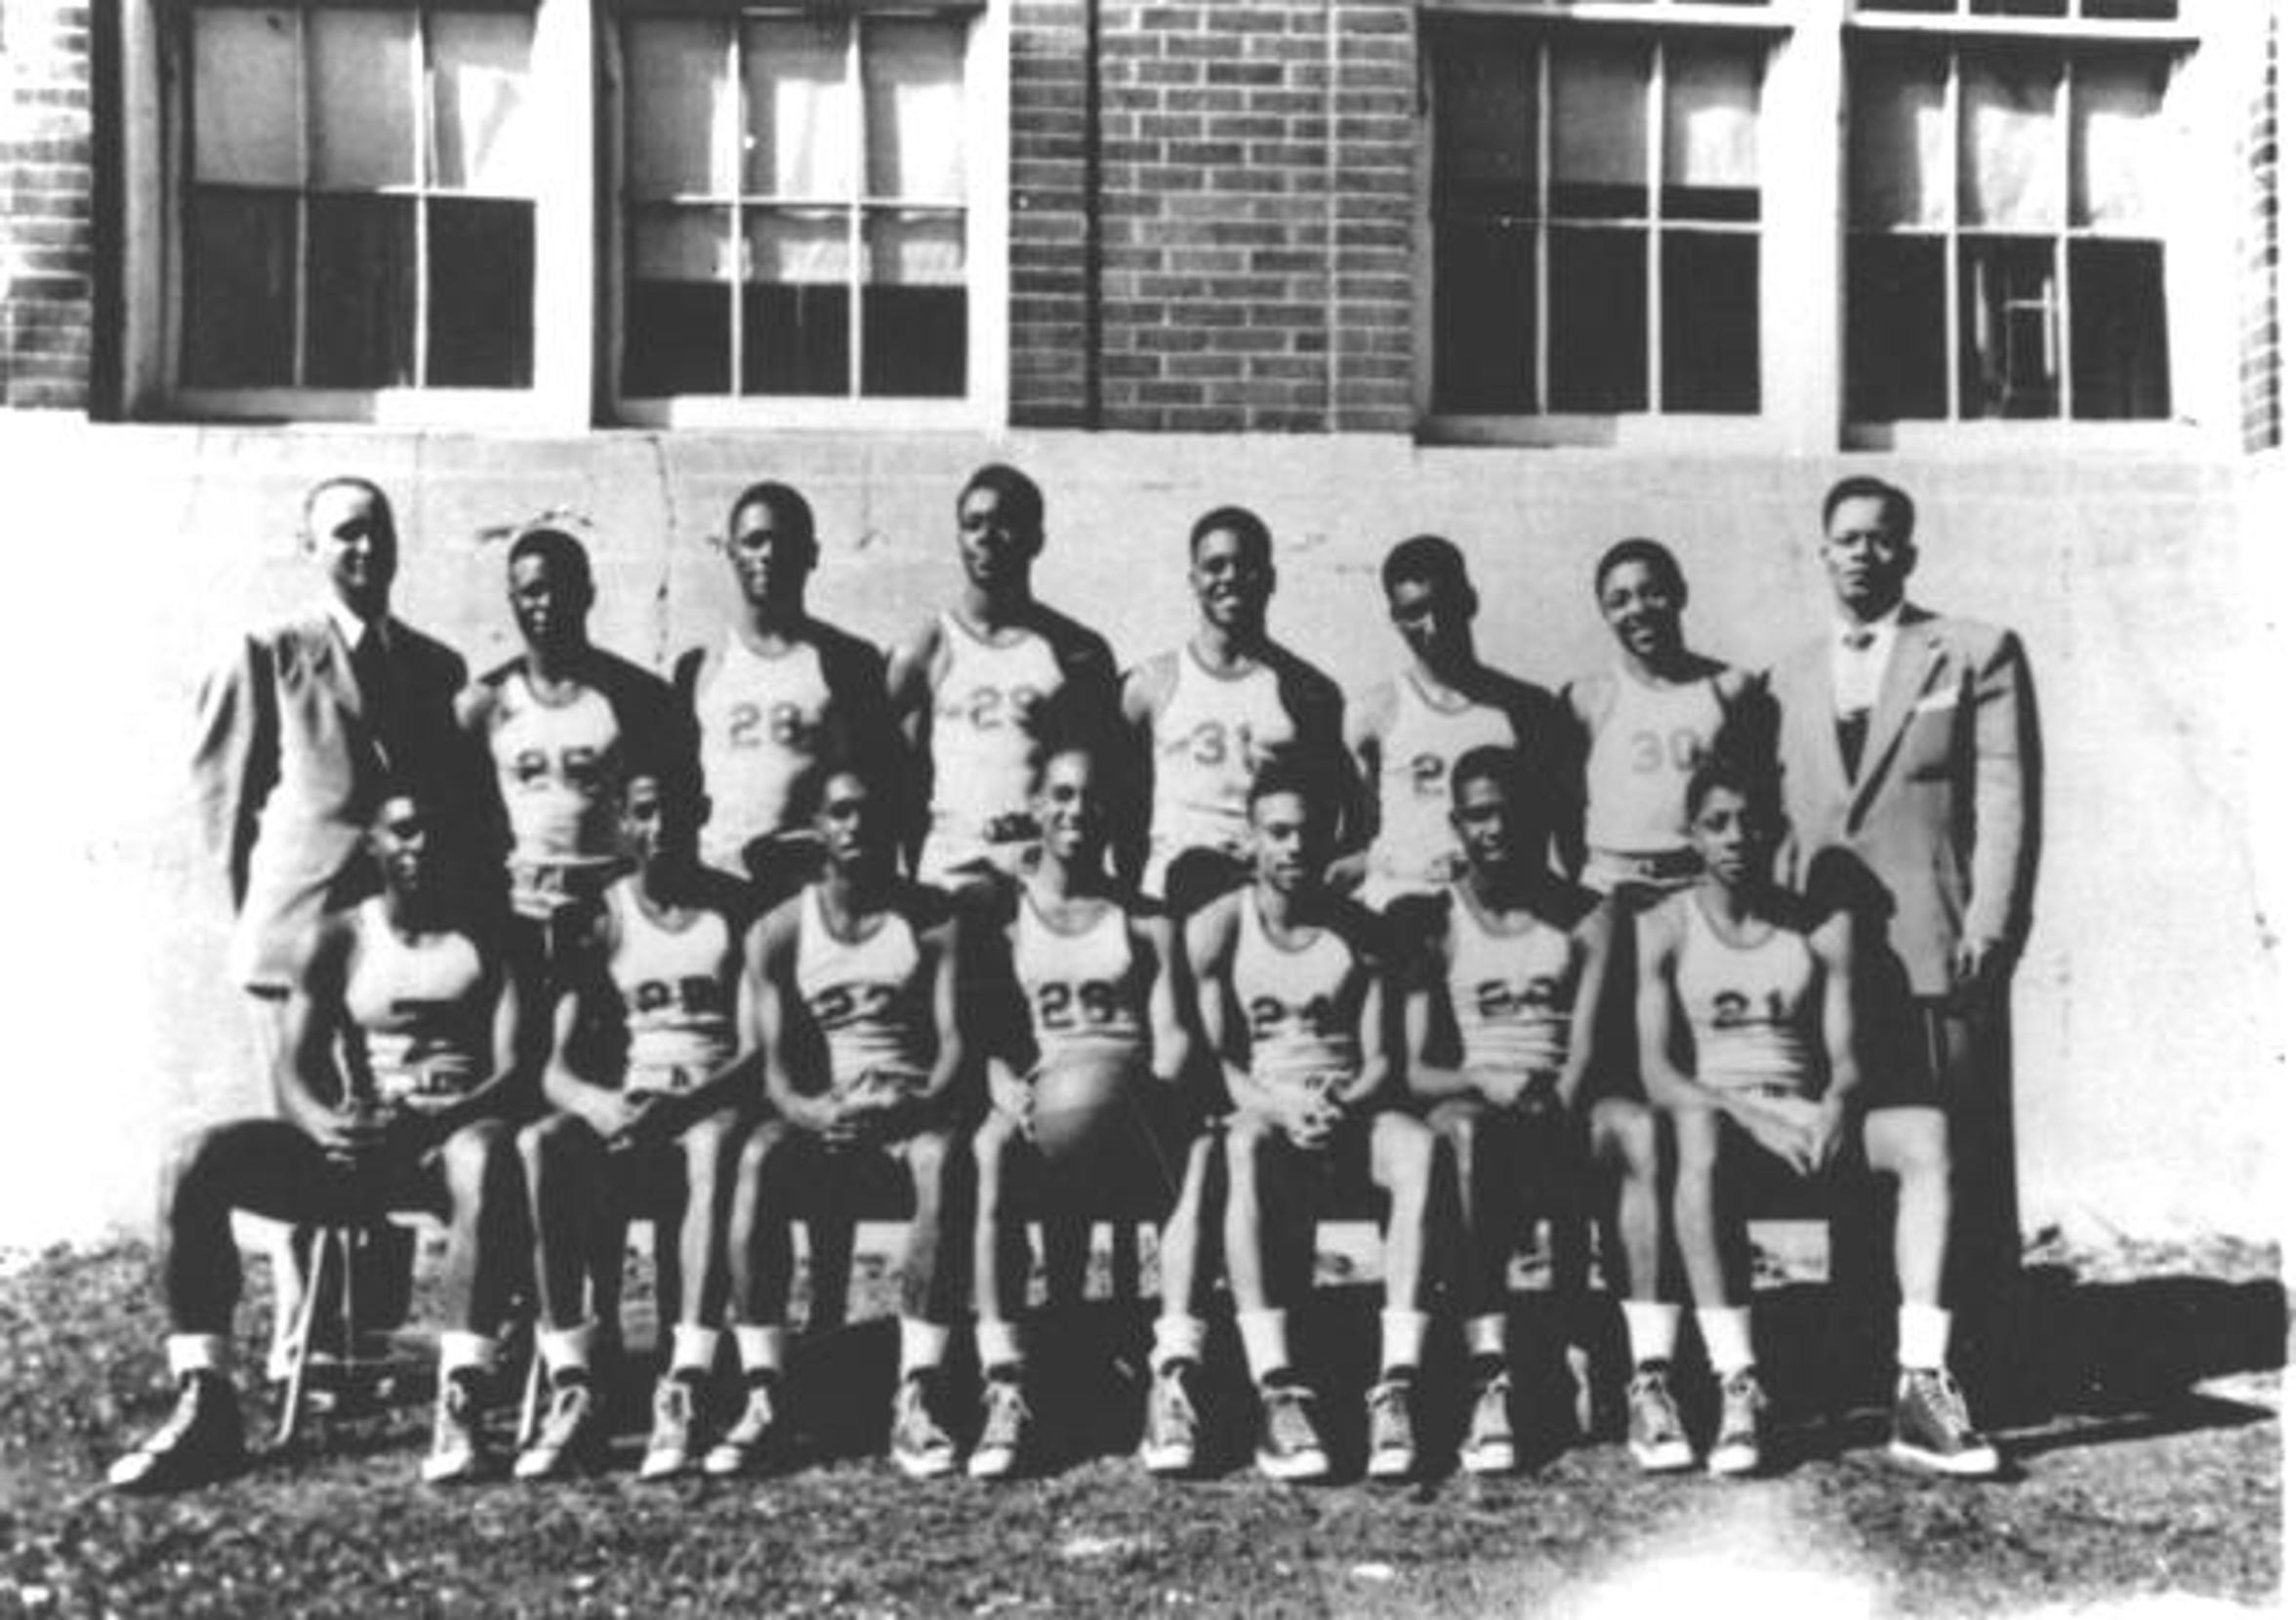 Lincoln High School basketball team, mid-1940s. The coach, Thomas Cheeks, whose Lions had always been a powerhouse in the state, regional, and and national competition among black high schools, is standing on the far left.